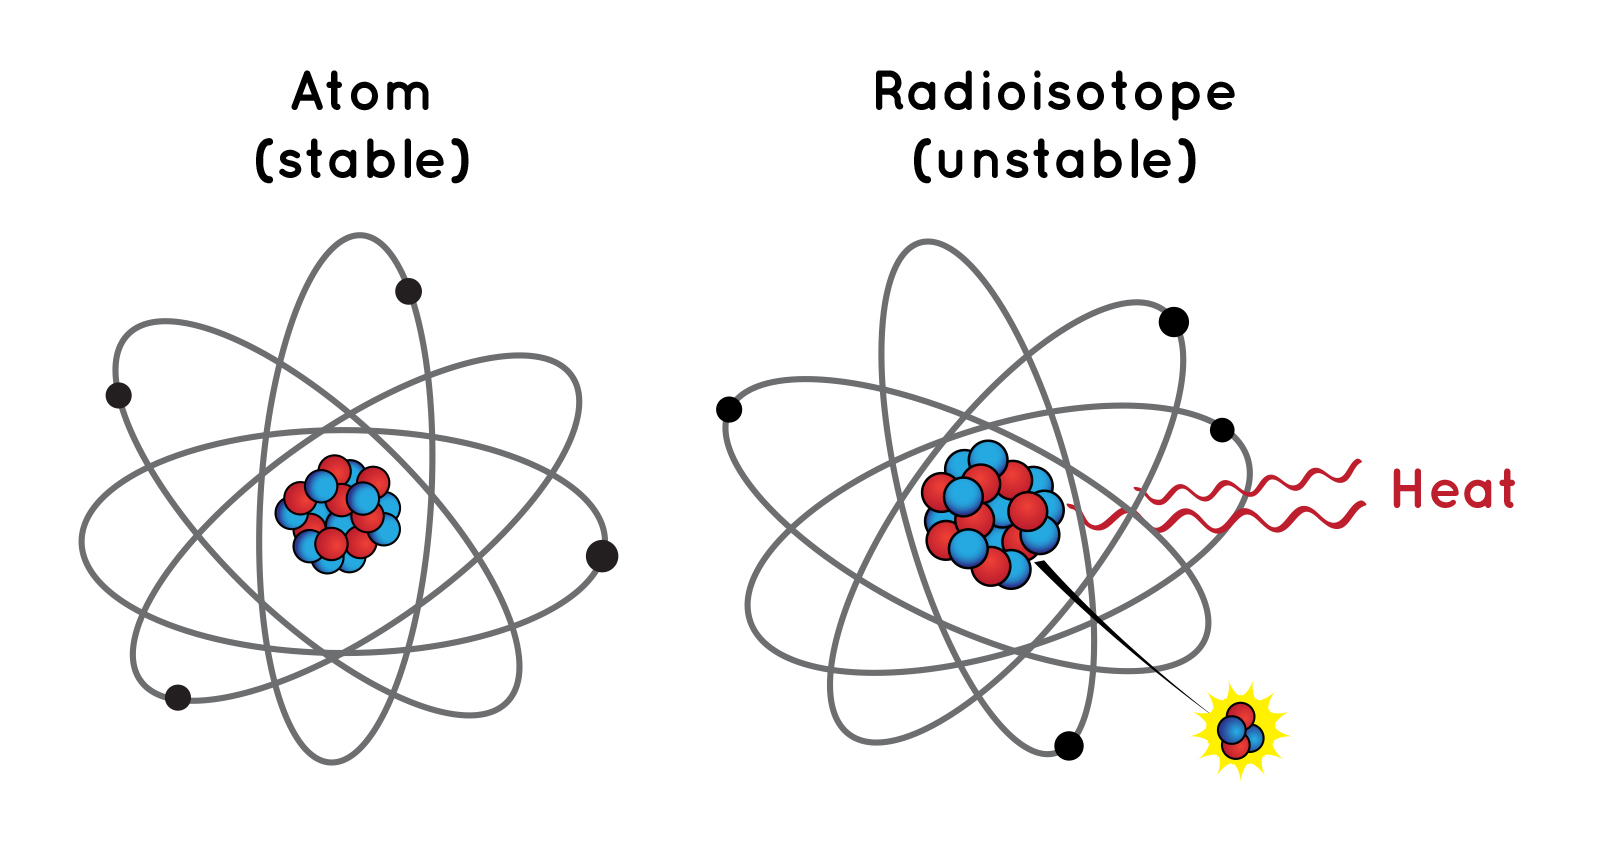 slide 3 - An illustration of a stable atom vs an unstable atom